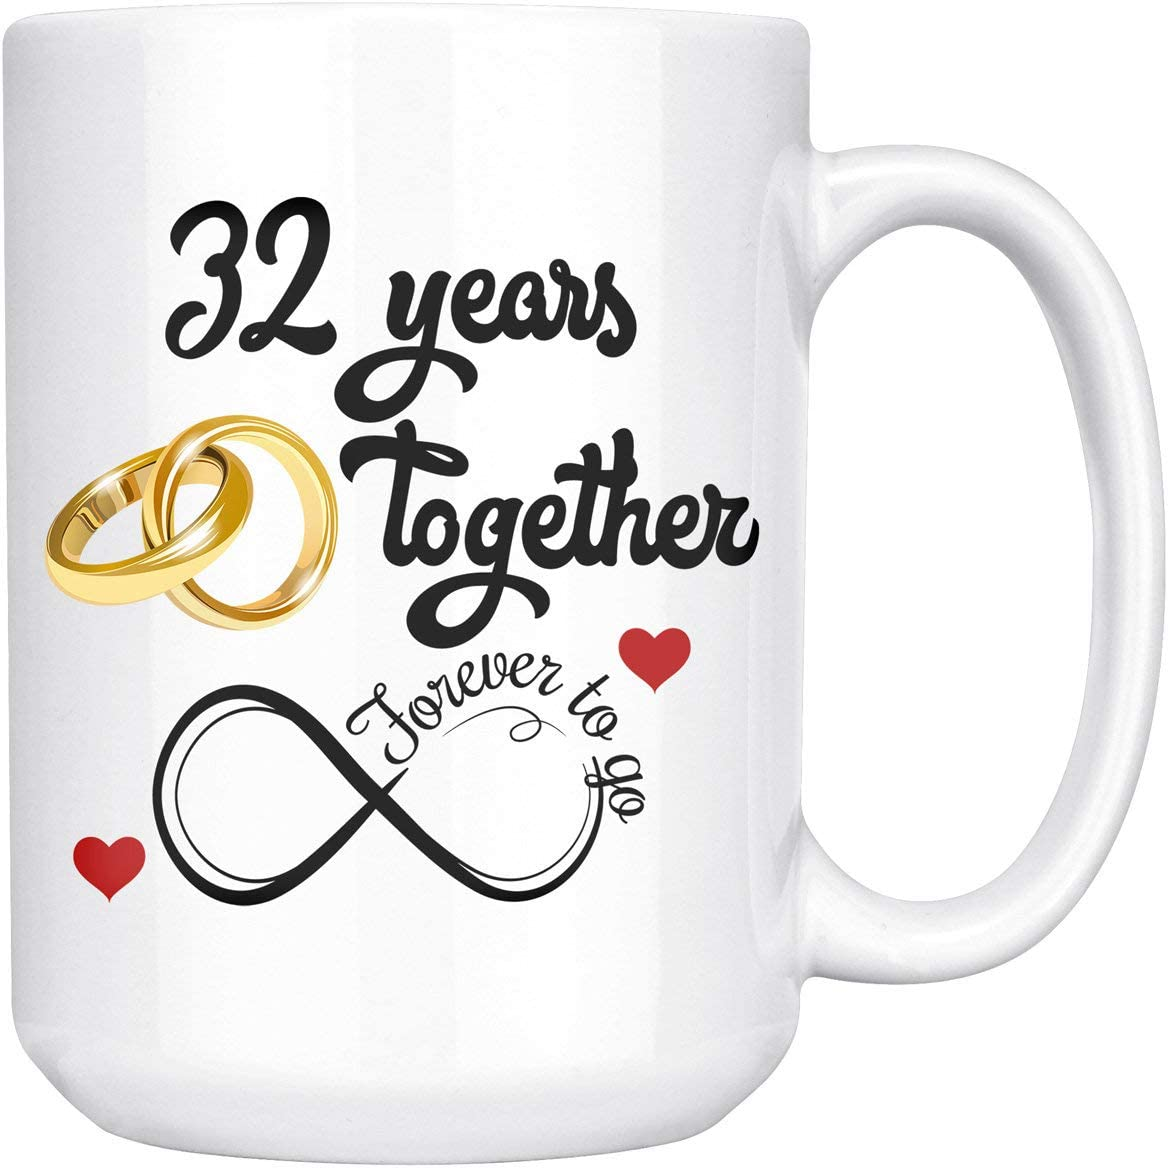 Amazon Com 32nd Wedding Anniversary For Him And Her 32nd Anniversarys For Her Him 32nd Anniversary Mug For Husband Wife 32 Years Together Married 32 Years 32 Years Couple 15 Oz Kitchen Dining